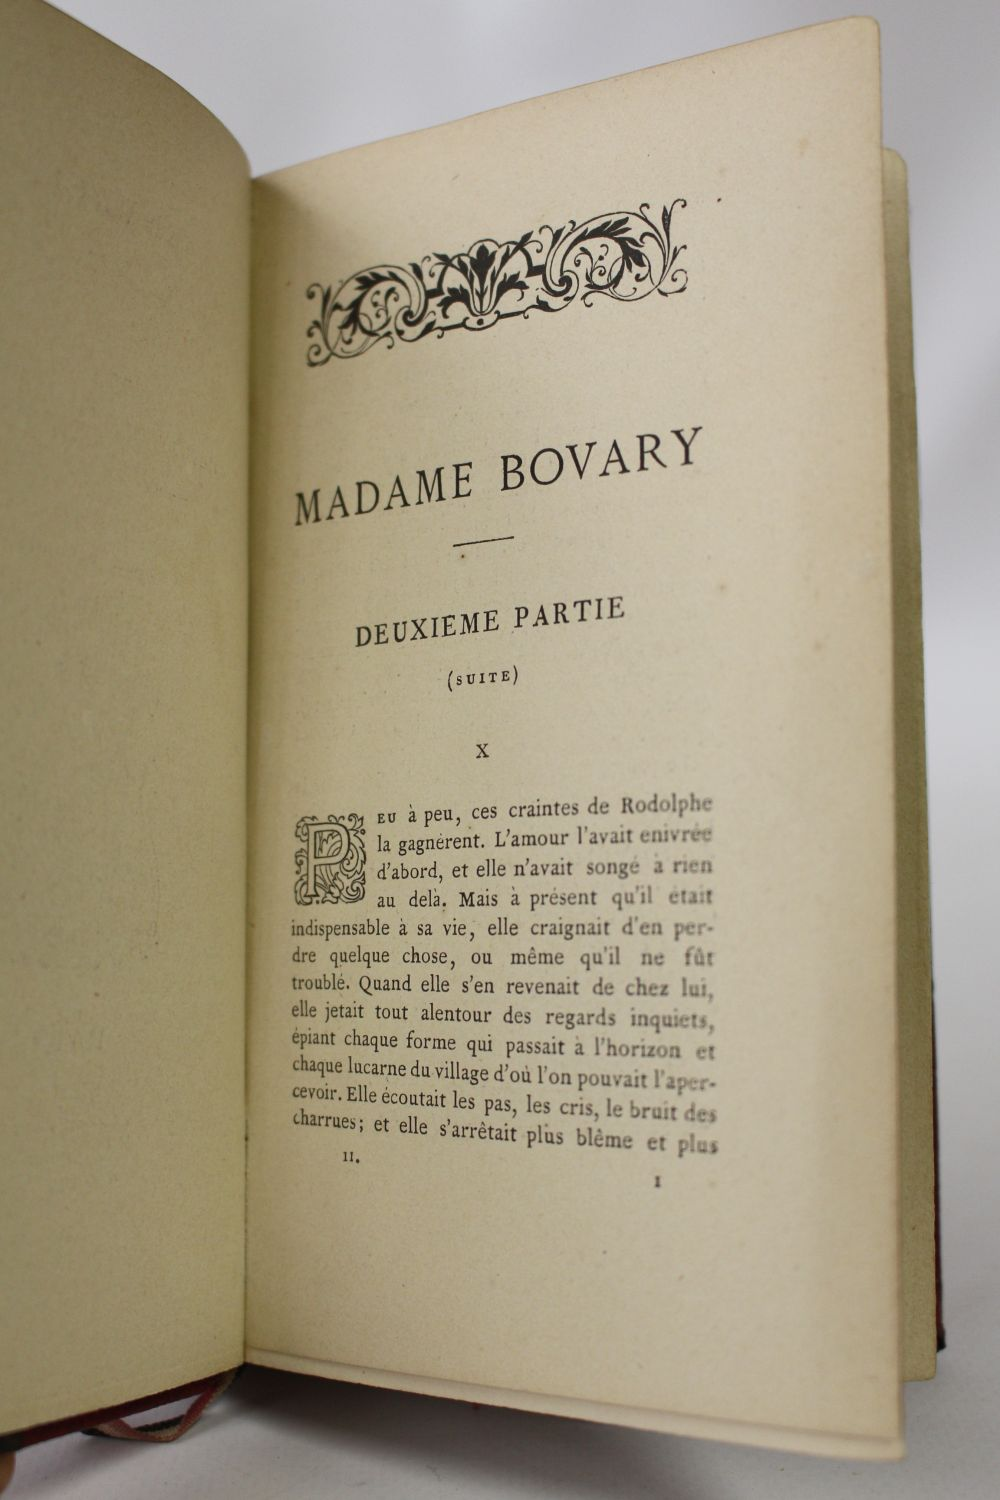 flauberts descriptive artistry of madame bovary When he heard that i had just finished a translation of madame bovary,  now,  knowing better, i can enjoy all of flaubert's little gibes  oh, art art most of   they race off on tangents, describing broad loops and arcs, or tight circles,  always.